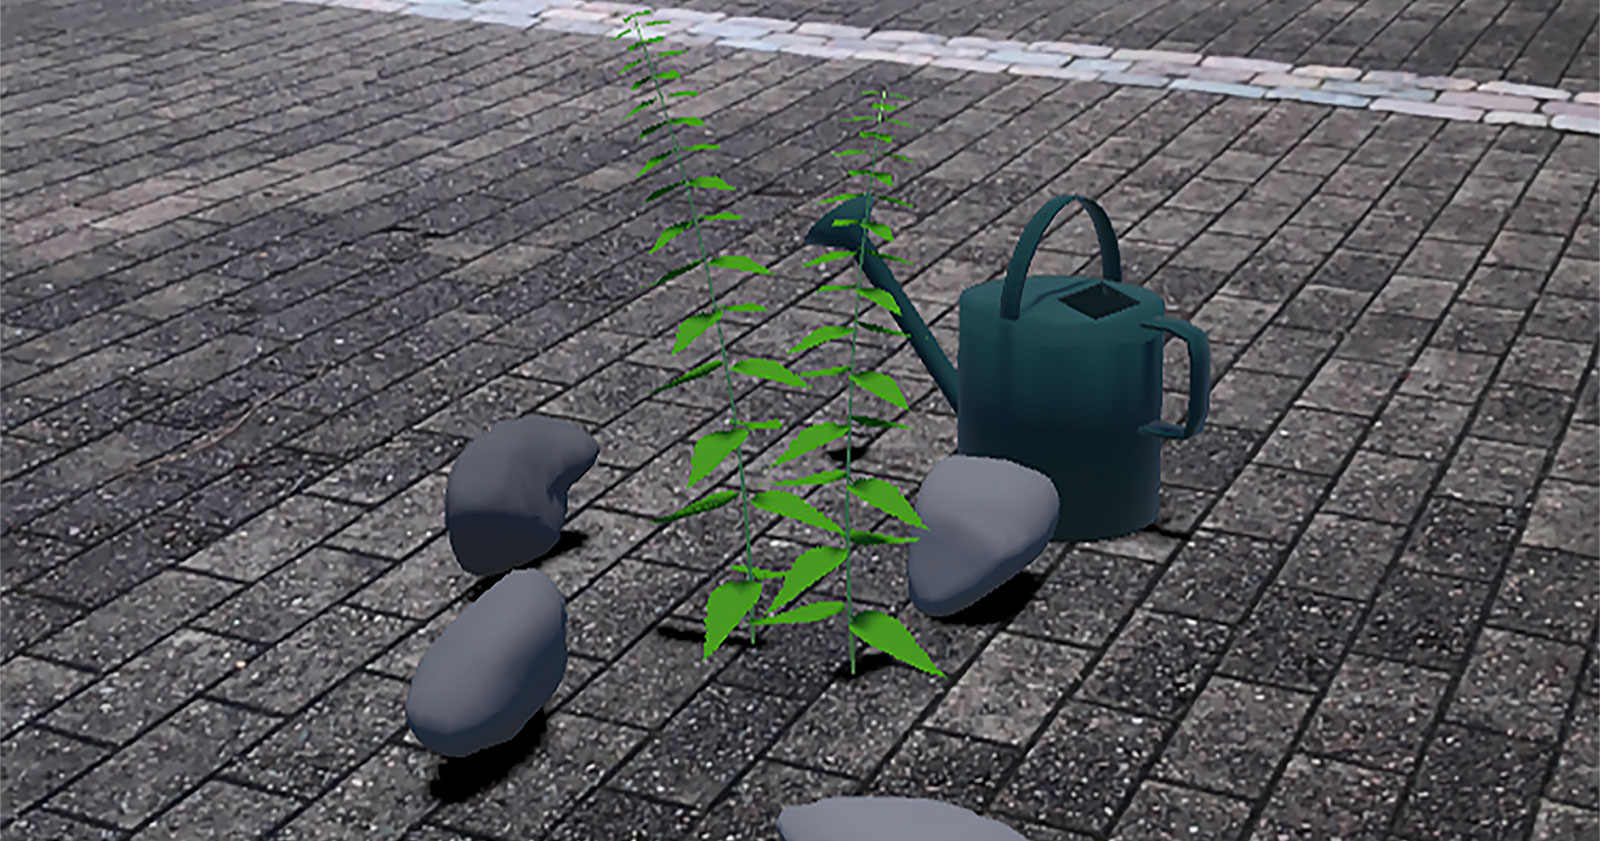 Virtual reality environment with a plant and watering can on the ground.